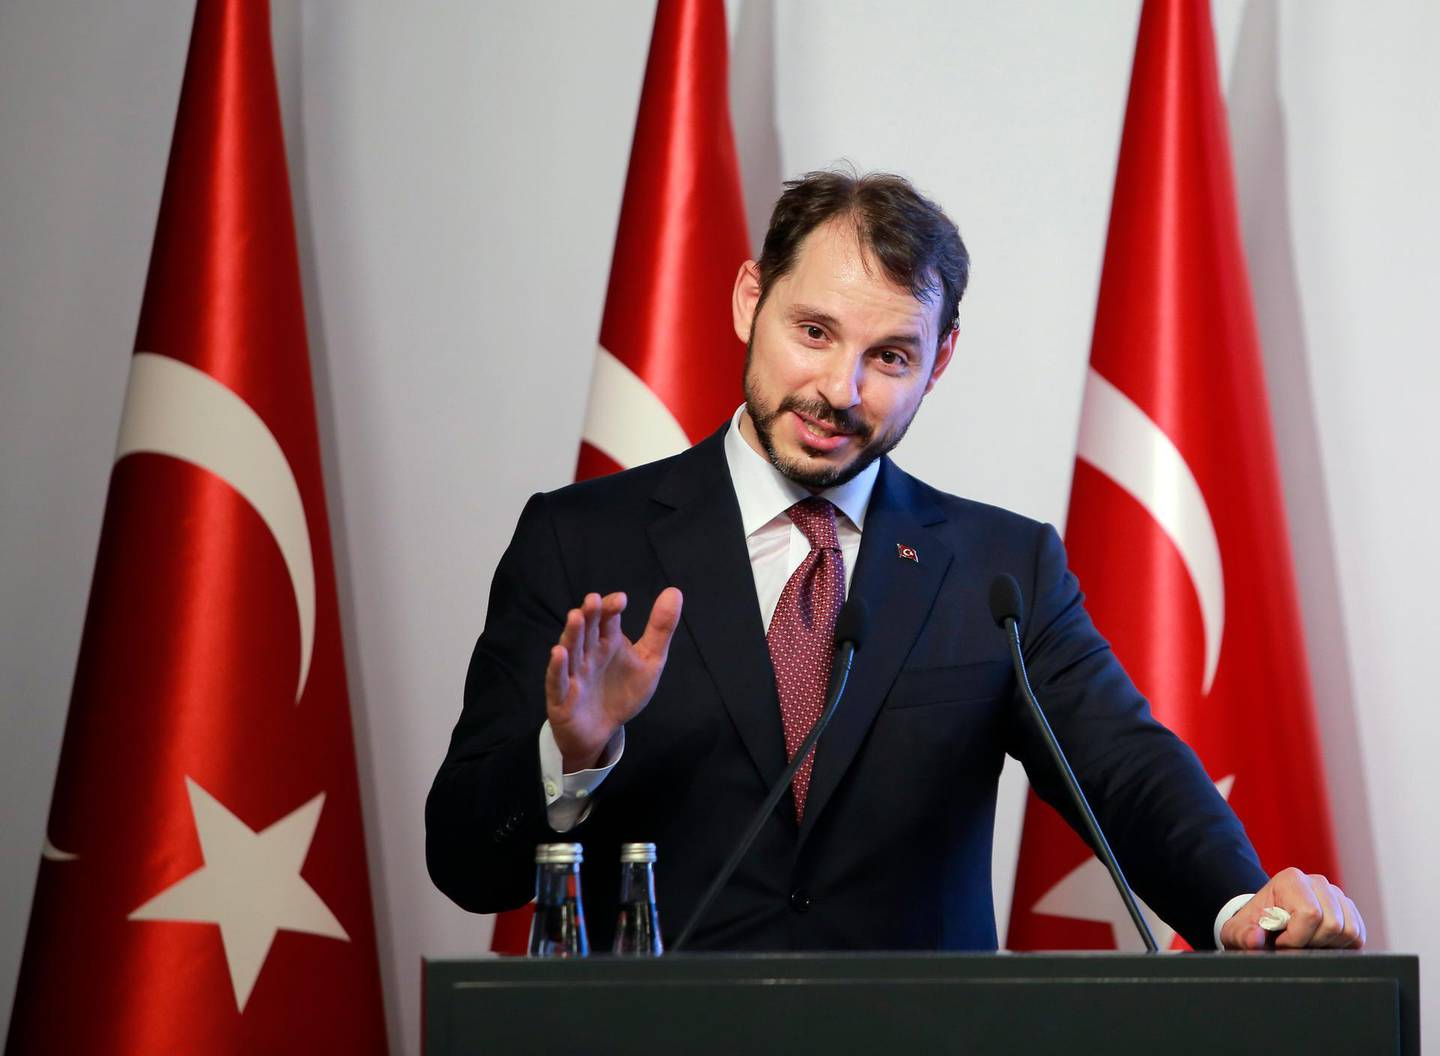 """Berat Albayrak, Turkey's Finance and Treasury Minister, son-in-law of President Recep Tayyip Erdogan, speaks about a """" new economic model """" in Istanbul, Friday, Aug. 10, 2018. Turkey was hit by a financial shockwave Friday as its currency nosedived on concerns about its economic policies and a dispute with the U.S., which President Donald Trump stoked further with a promise to double tariffs on the NATO ally. The lira hit a record low of 6.81 per dollar on Friday, before recovering to 6.51, tumbling more than 10 percent on the day. (AP Photo/Mucahit Yapici)"""